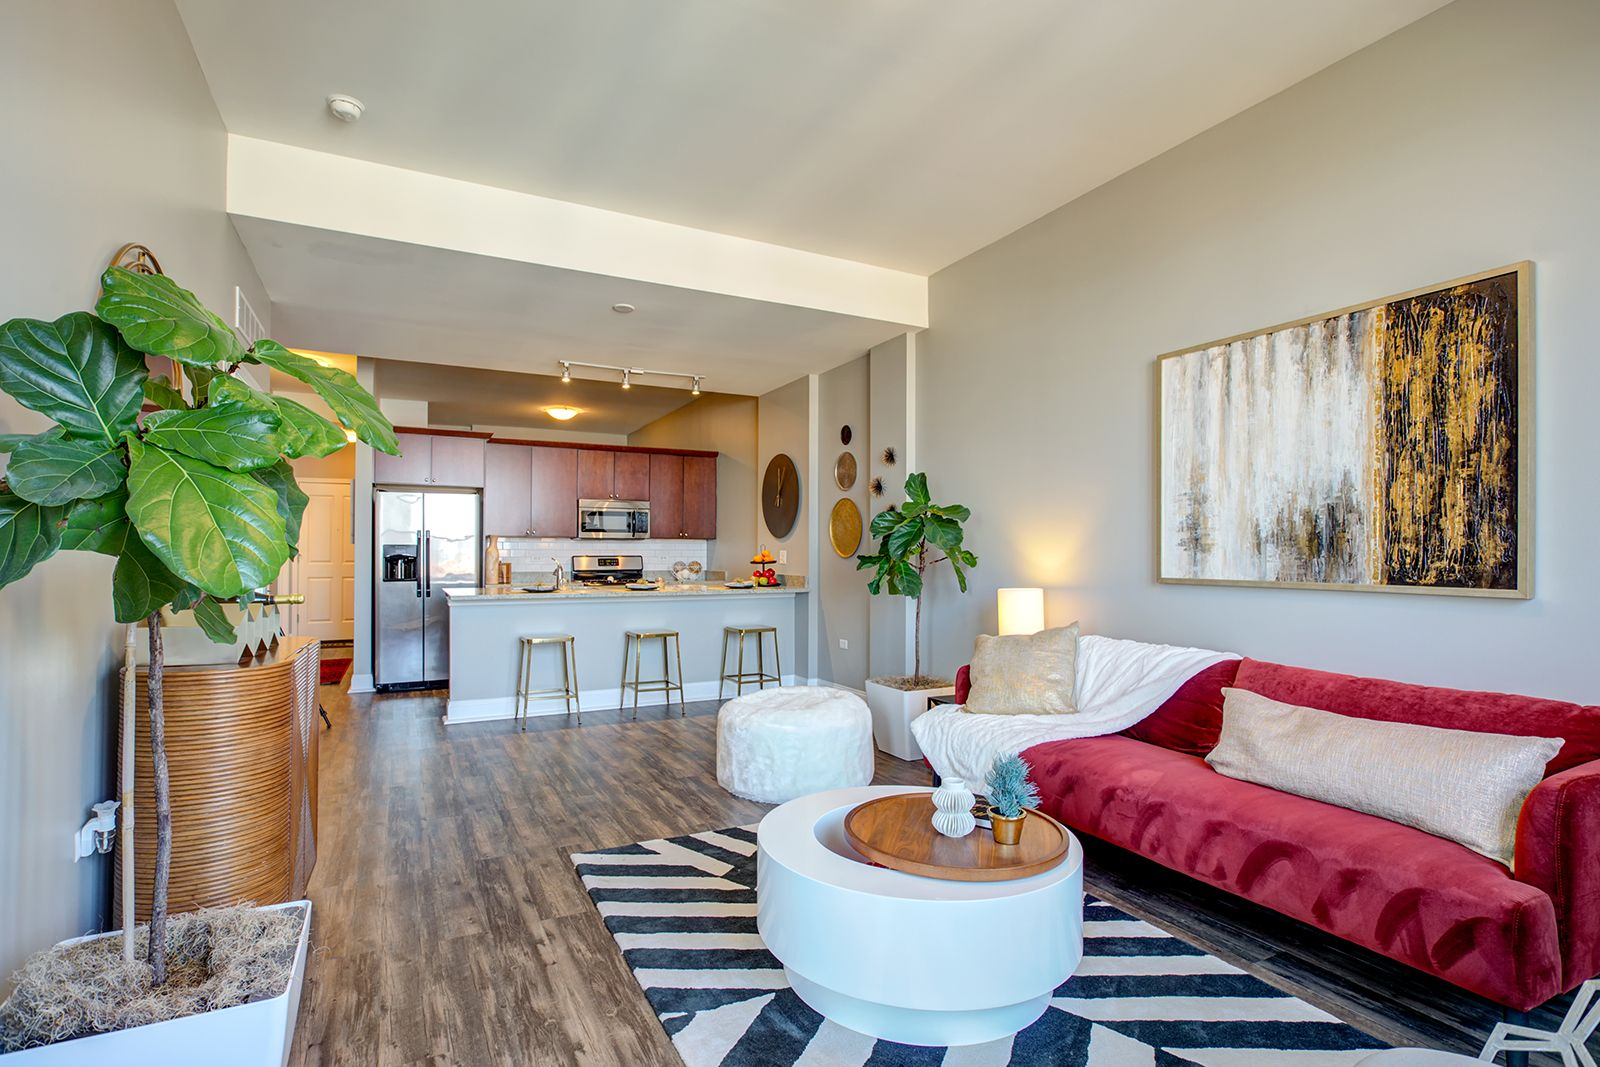 Arrivesouthloop In Chicago Has Apartments With Modern Interior Finishes That Include Granite Kitchen Islands With Do Apartments For Rent South Loop Apartment